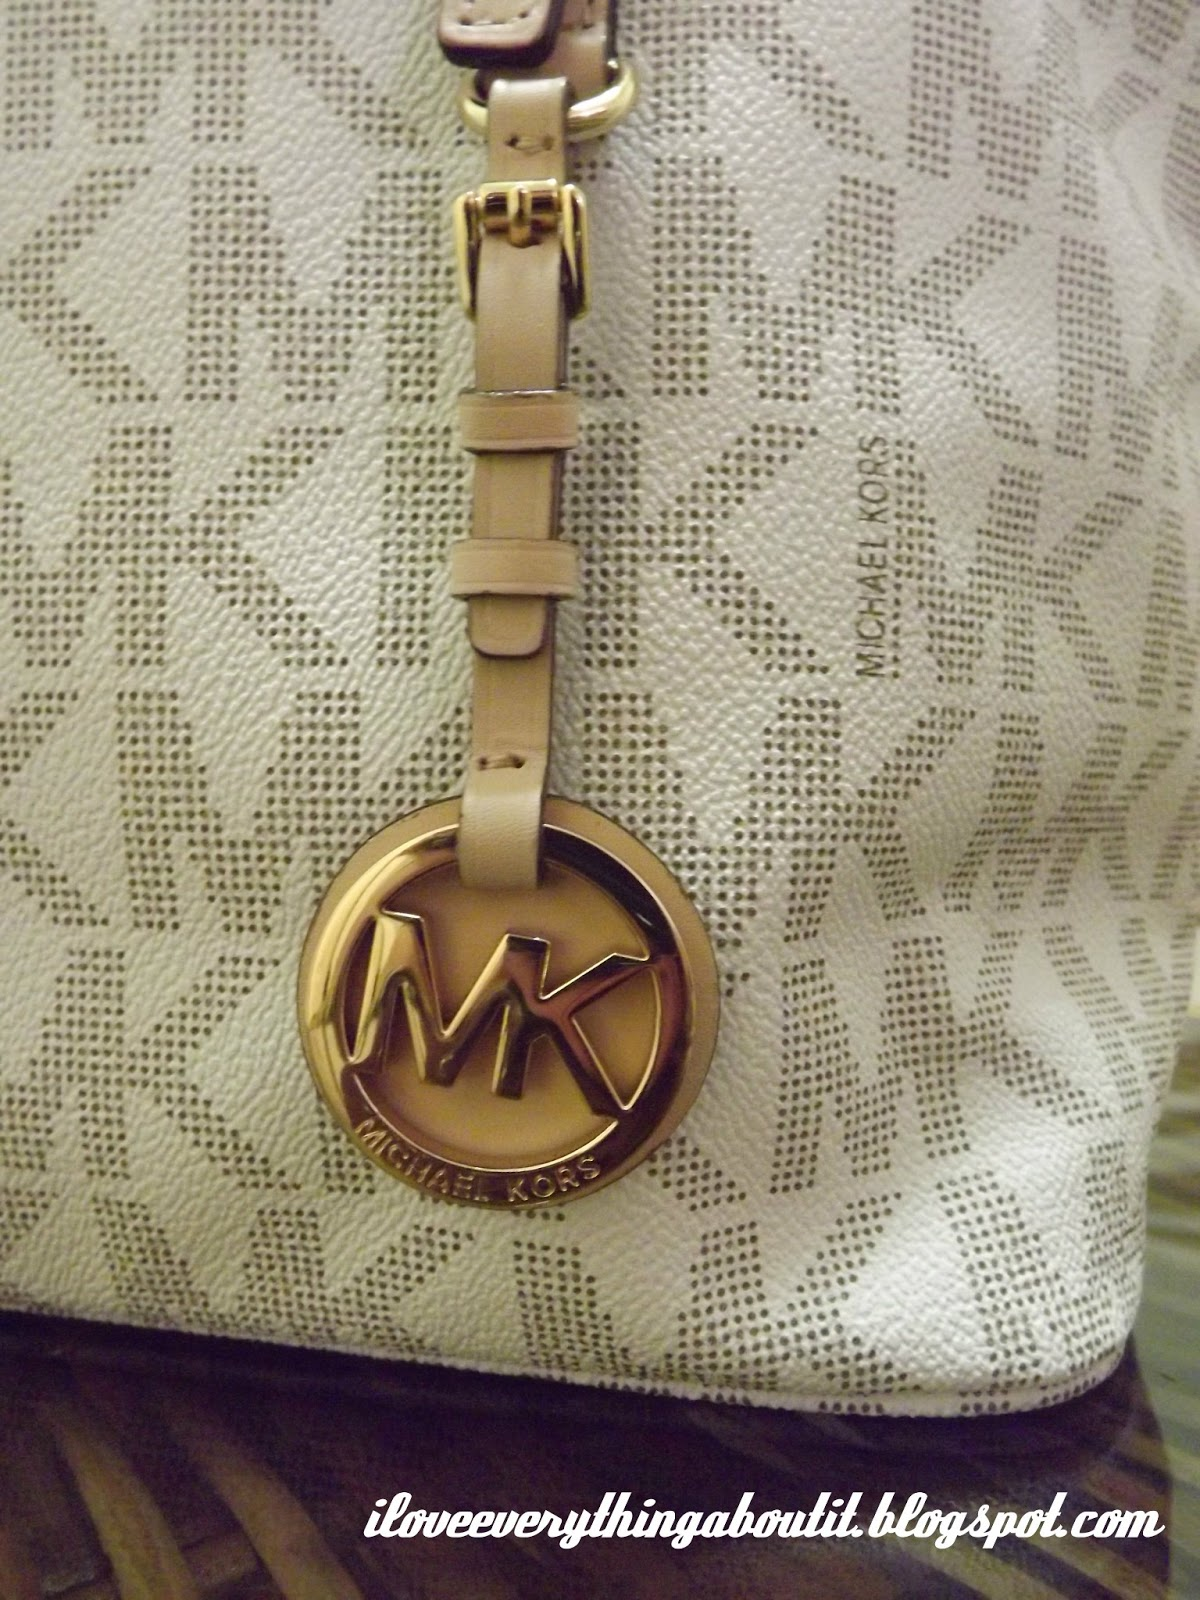 Michael kors tote bags philippines - Mk Bag Charm